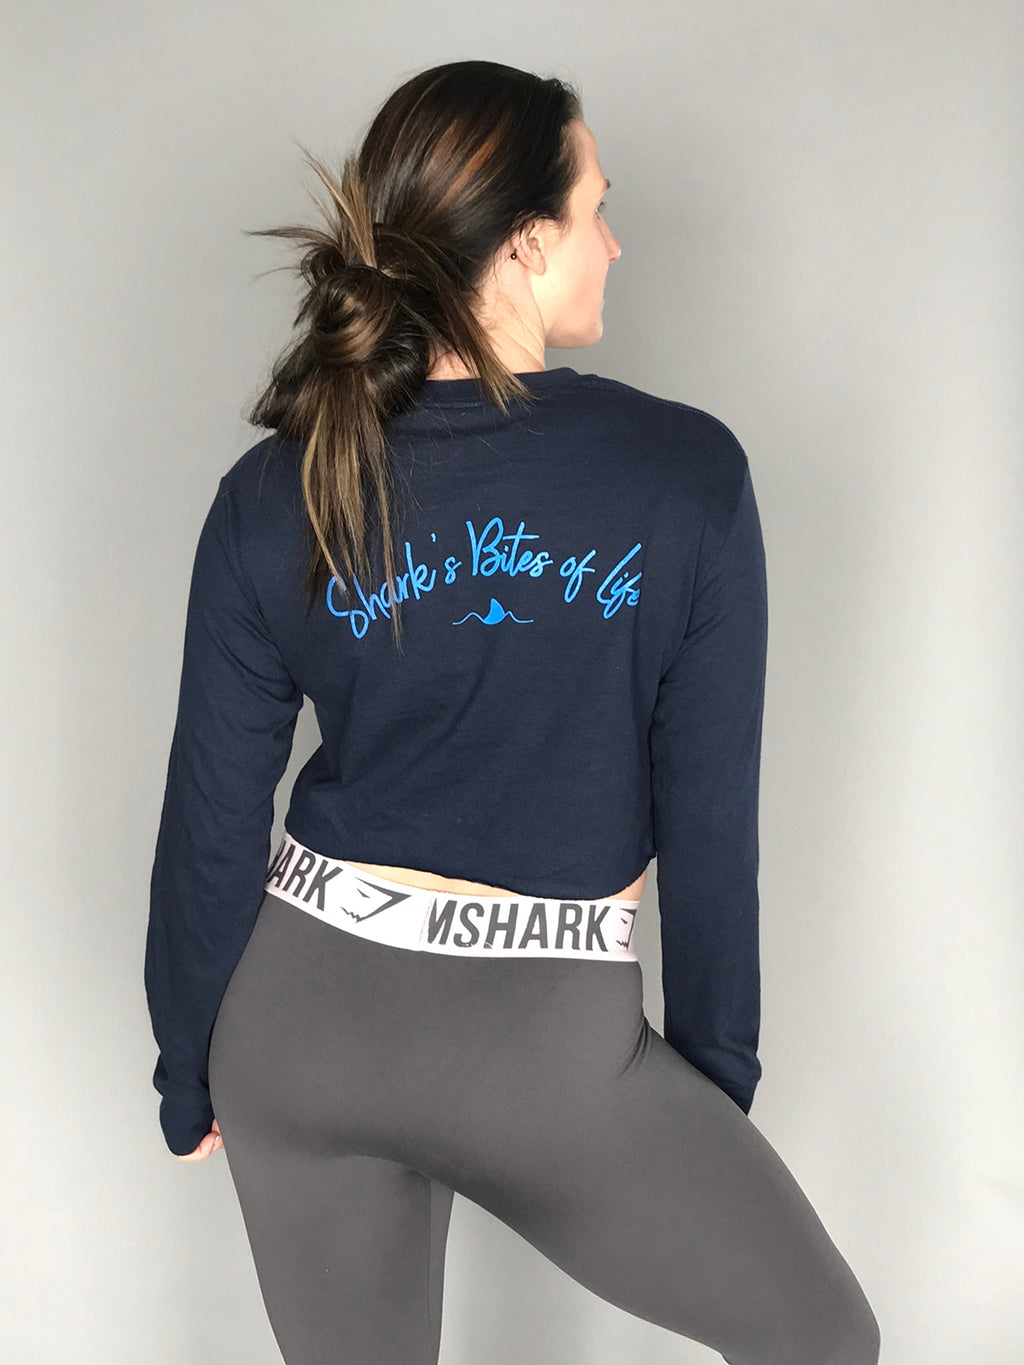 Shark's Bites of Life {Long Sleeve}